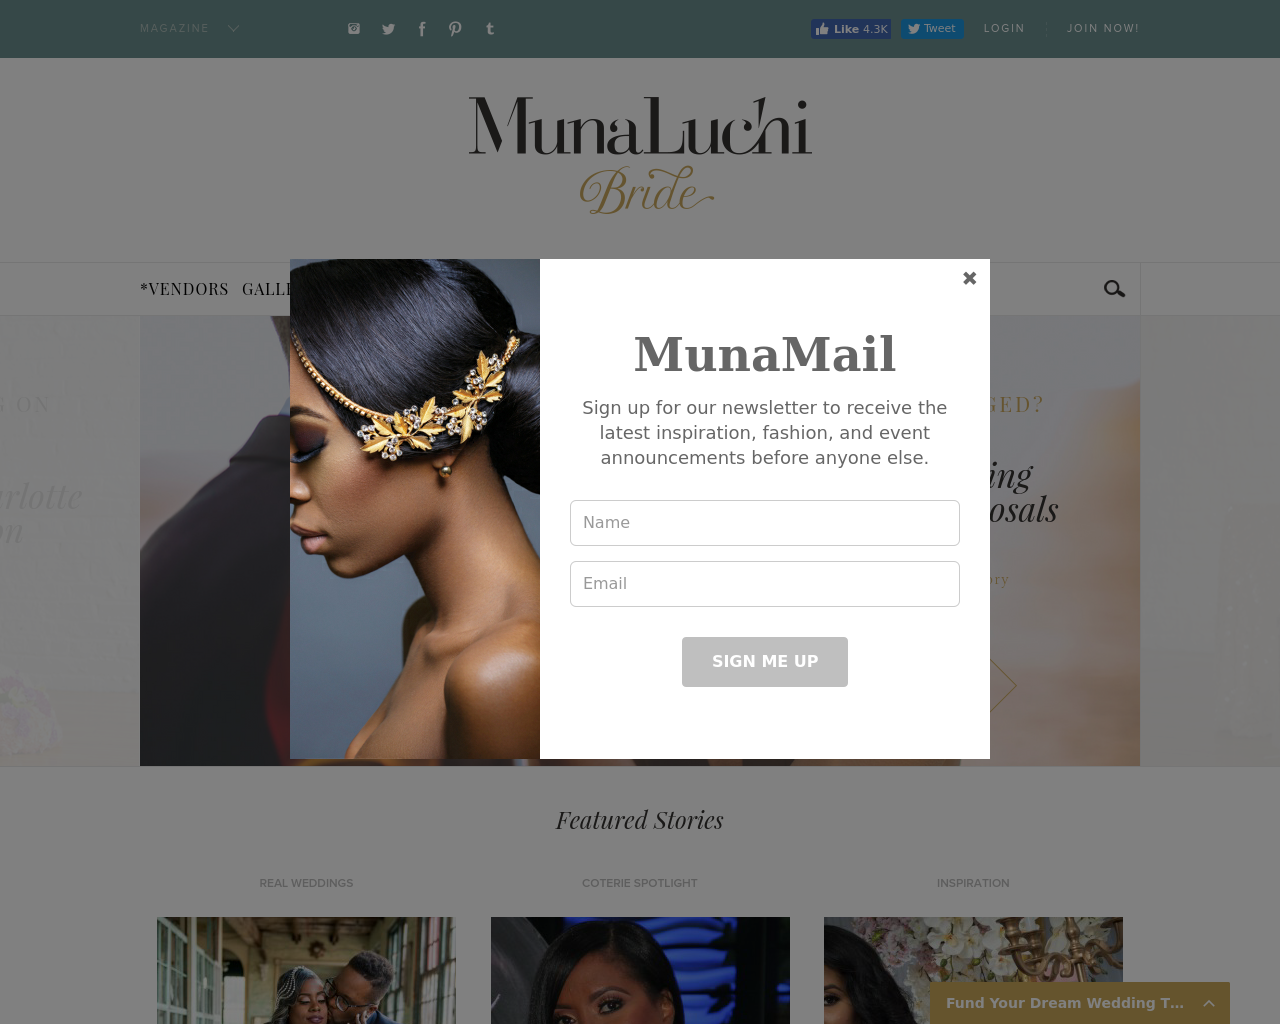 Munaluchi-Bridal-Advertising-Reviews-Pricing